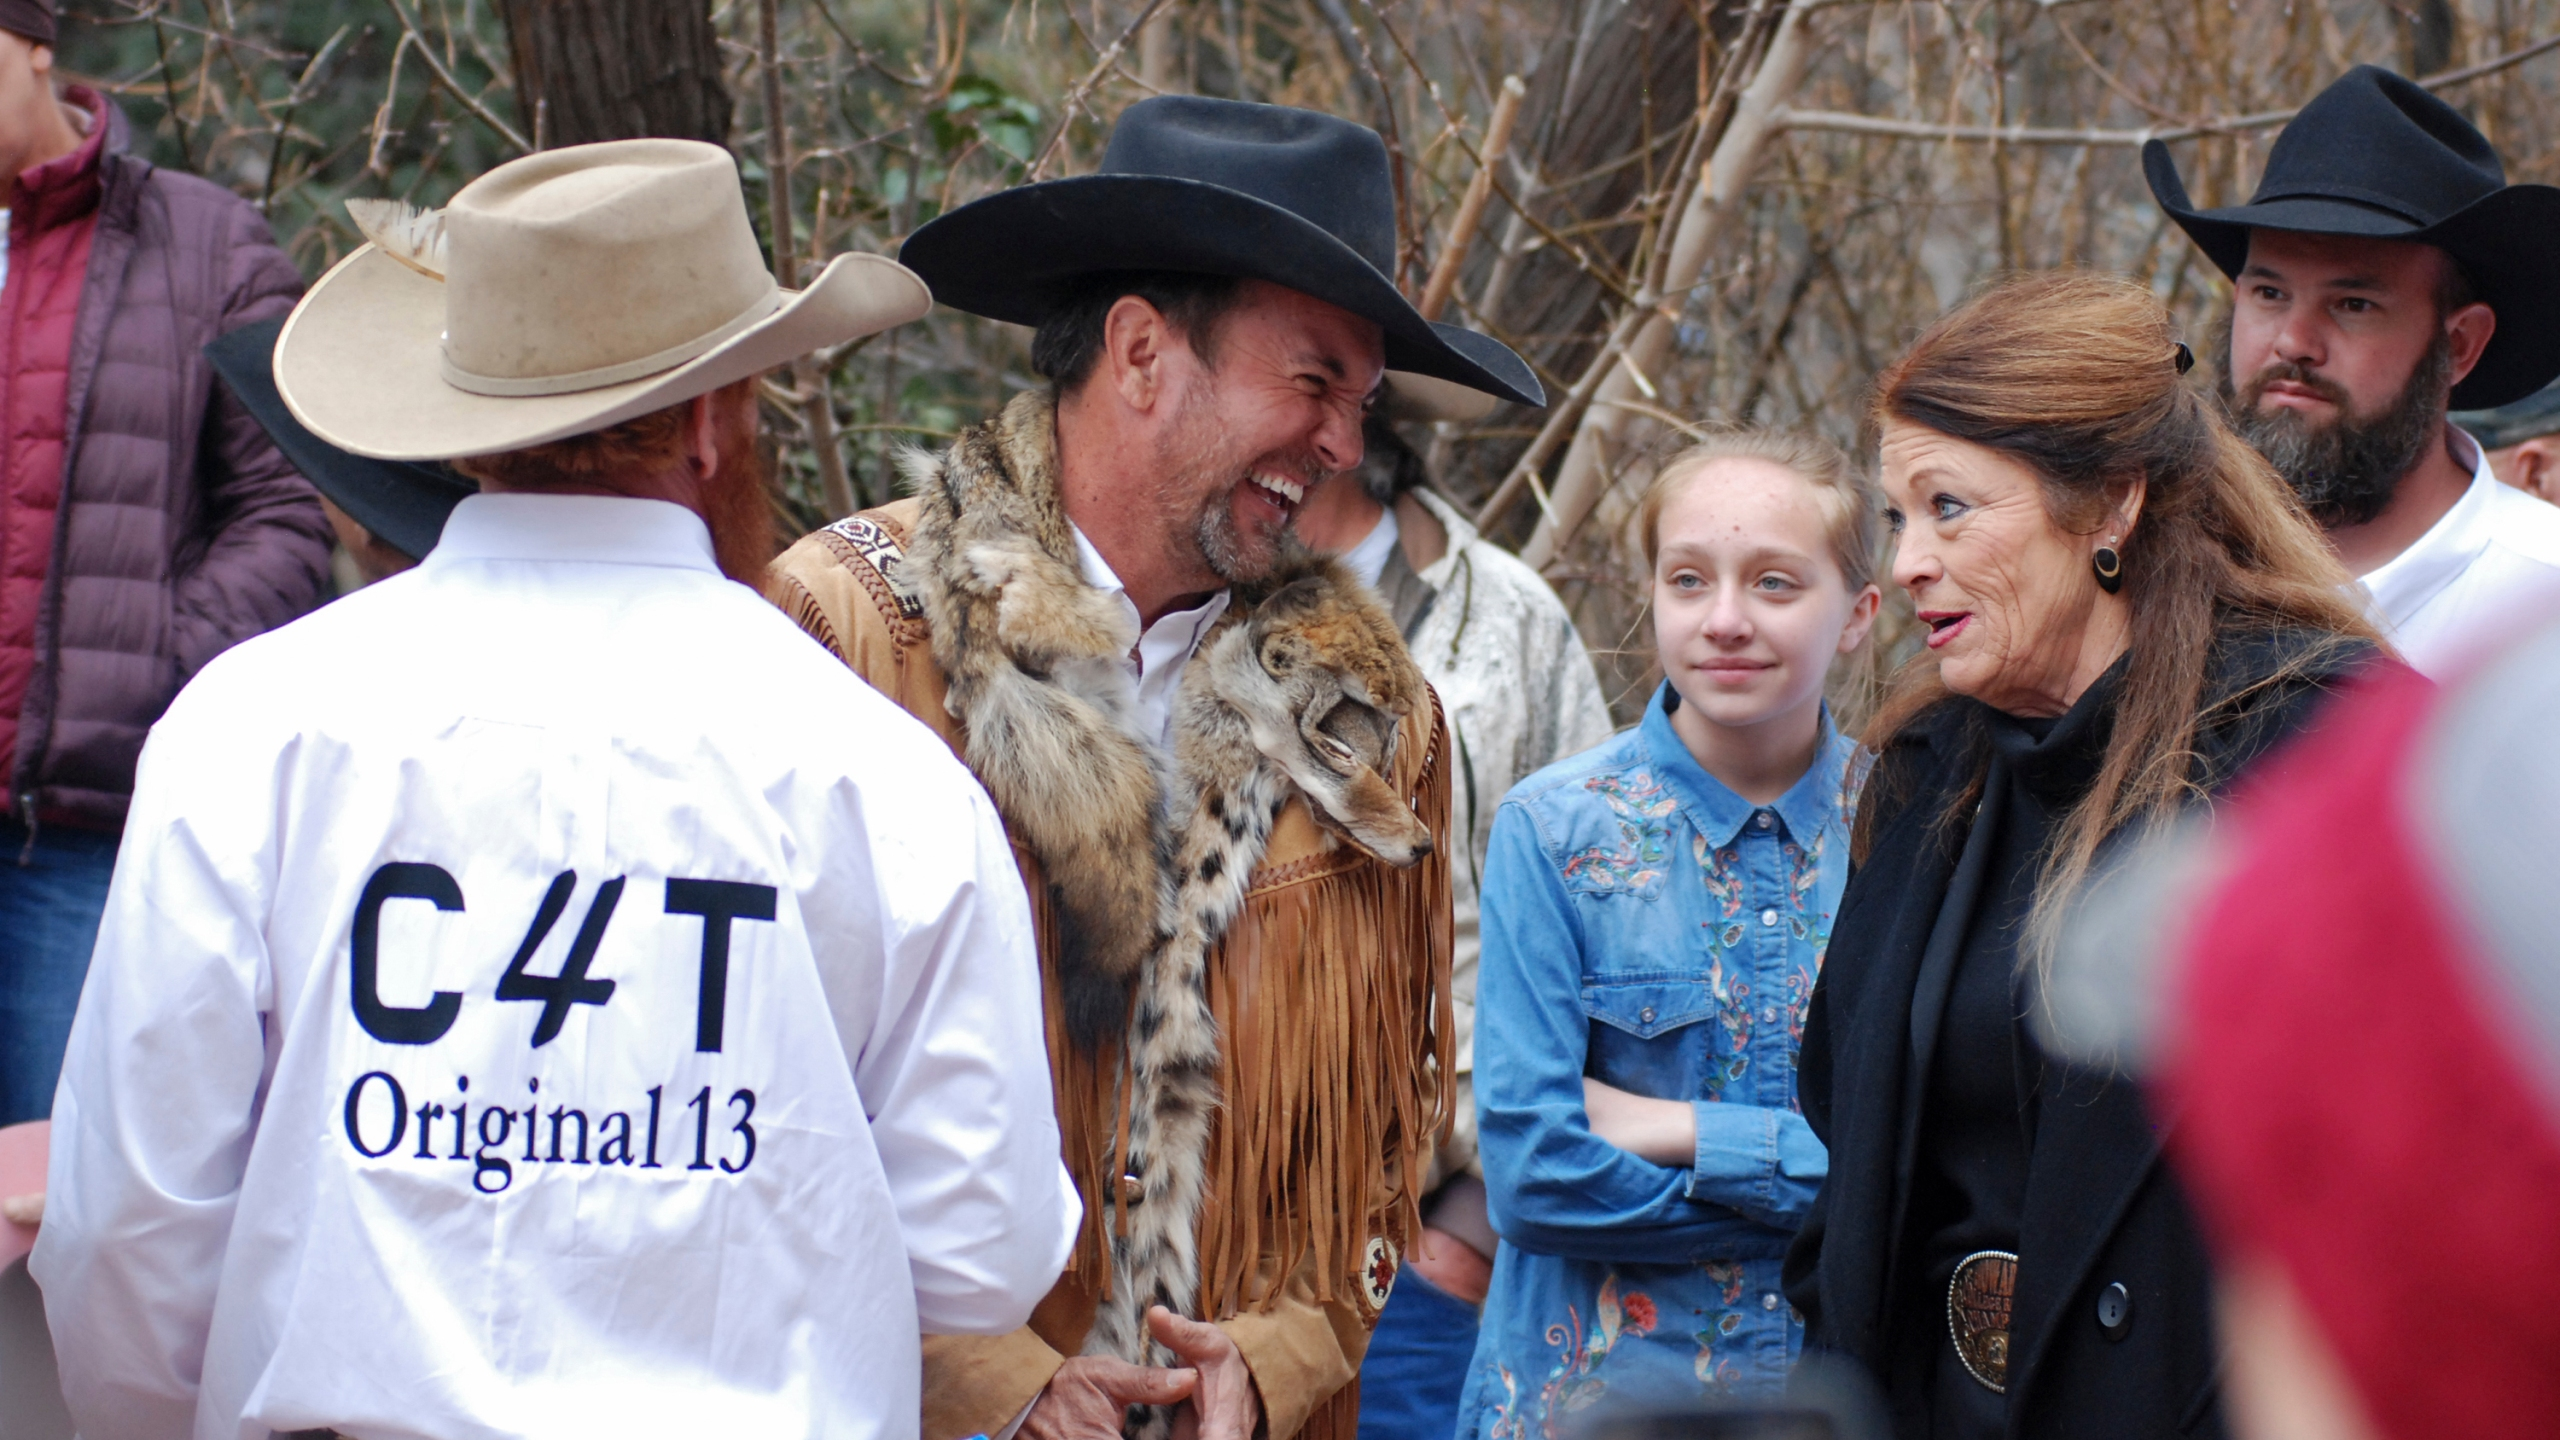 In this March 12, 2019, file photo, Cowboys for Trump leader and Otero County Commissioner Couy Griffin, center, talks with Republican New Mexico state Rep. Candy Ezzell of Roswell, N.M., at a protest against gun control and pro-abortion rights legislation outside the New Mexico state Capitol, in Santa Fe, N.M. (AP Photo/Morgan Lee)